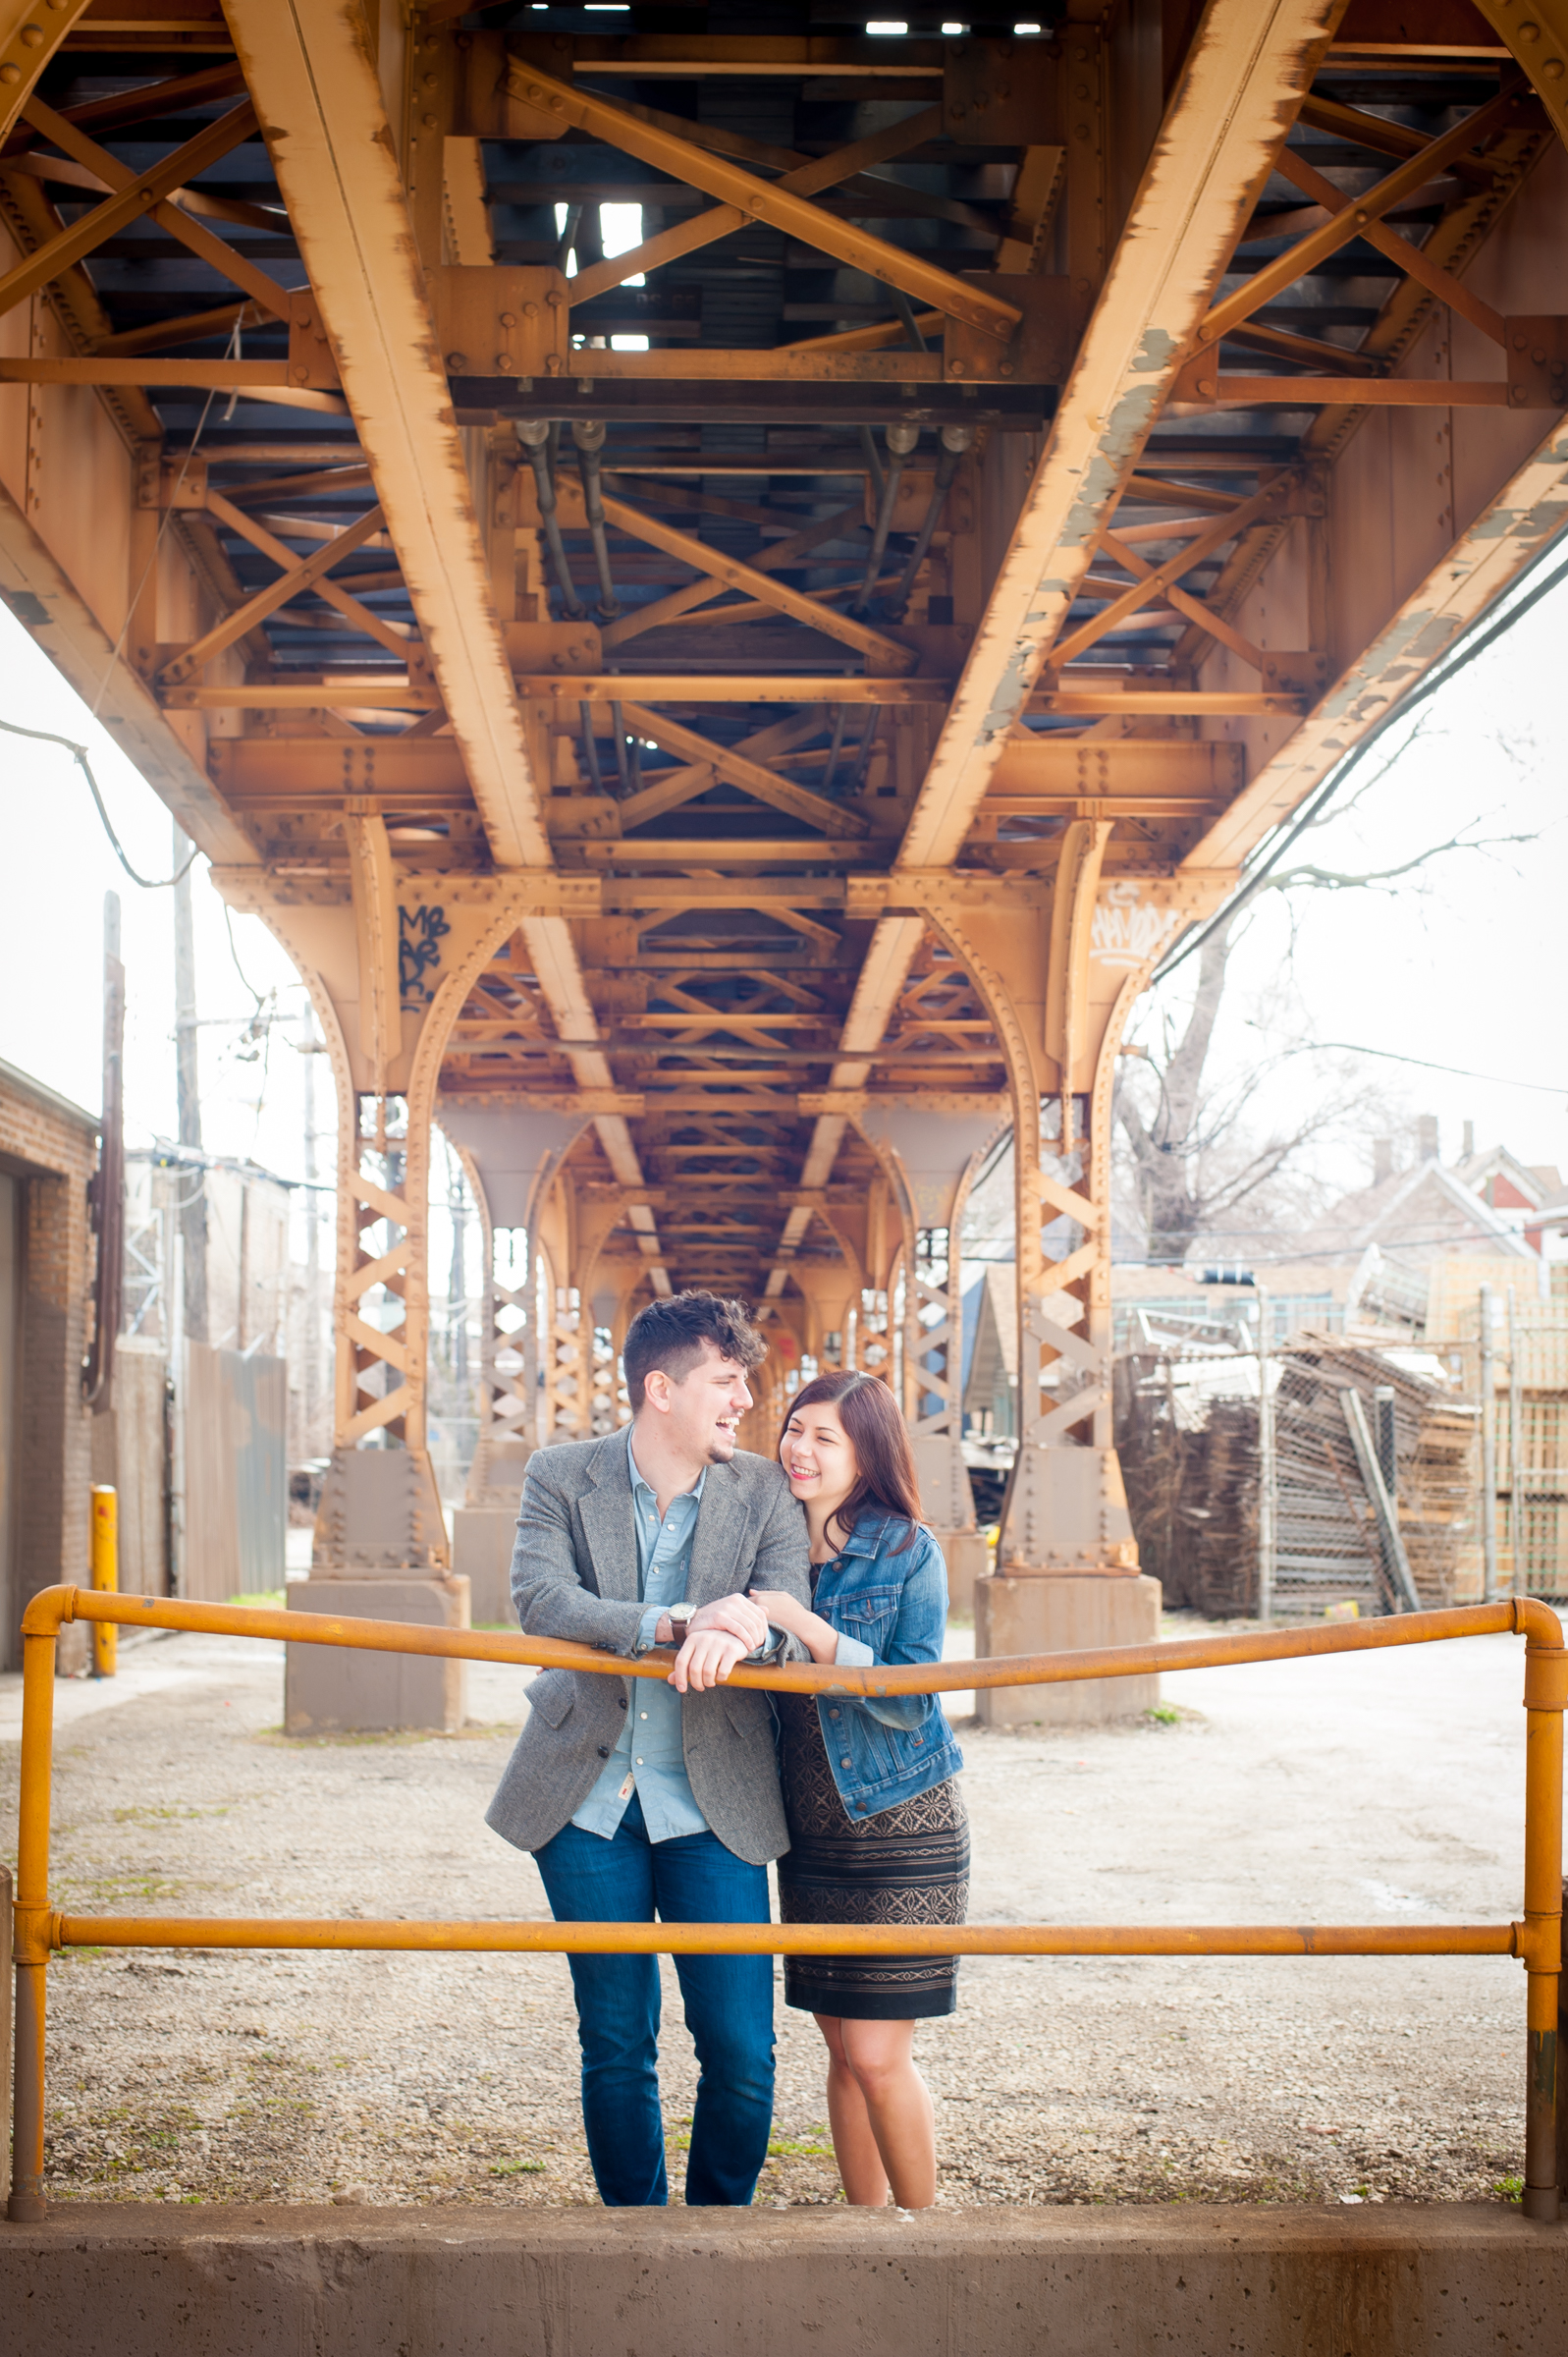 Chicago_Engagement_Photographer_Atassi_2.jpg